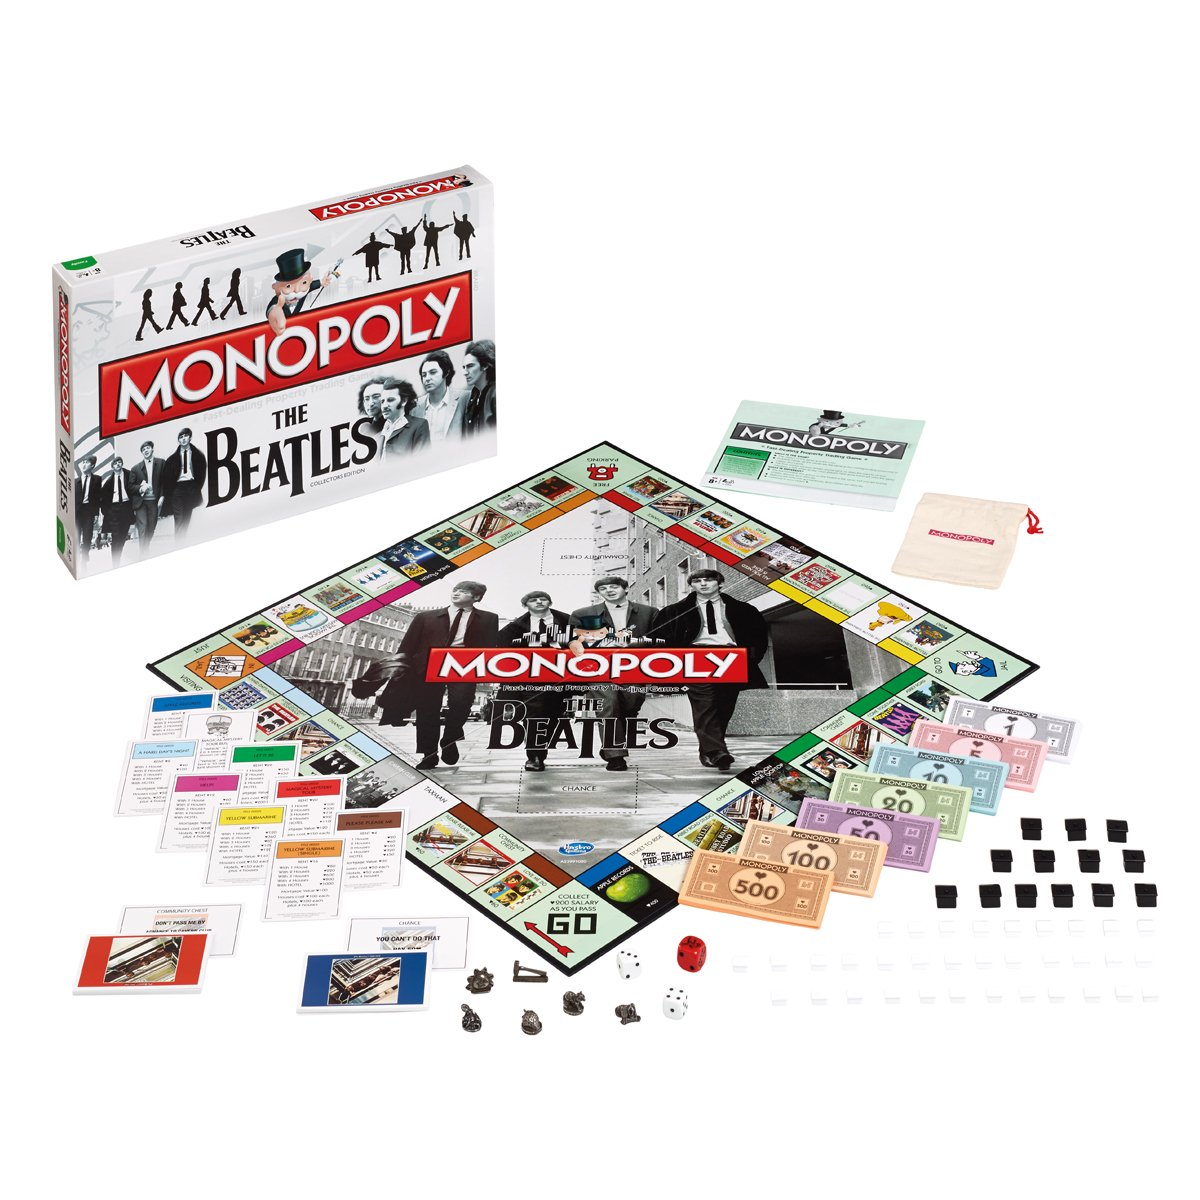 Monopoly The Beatles: Amazon.es: Libros en idiomas extranjeros